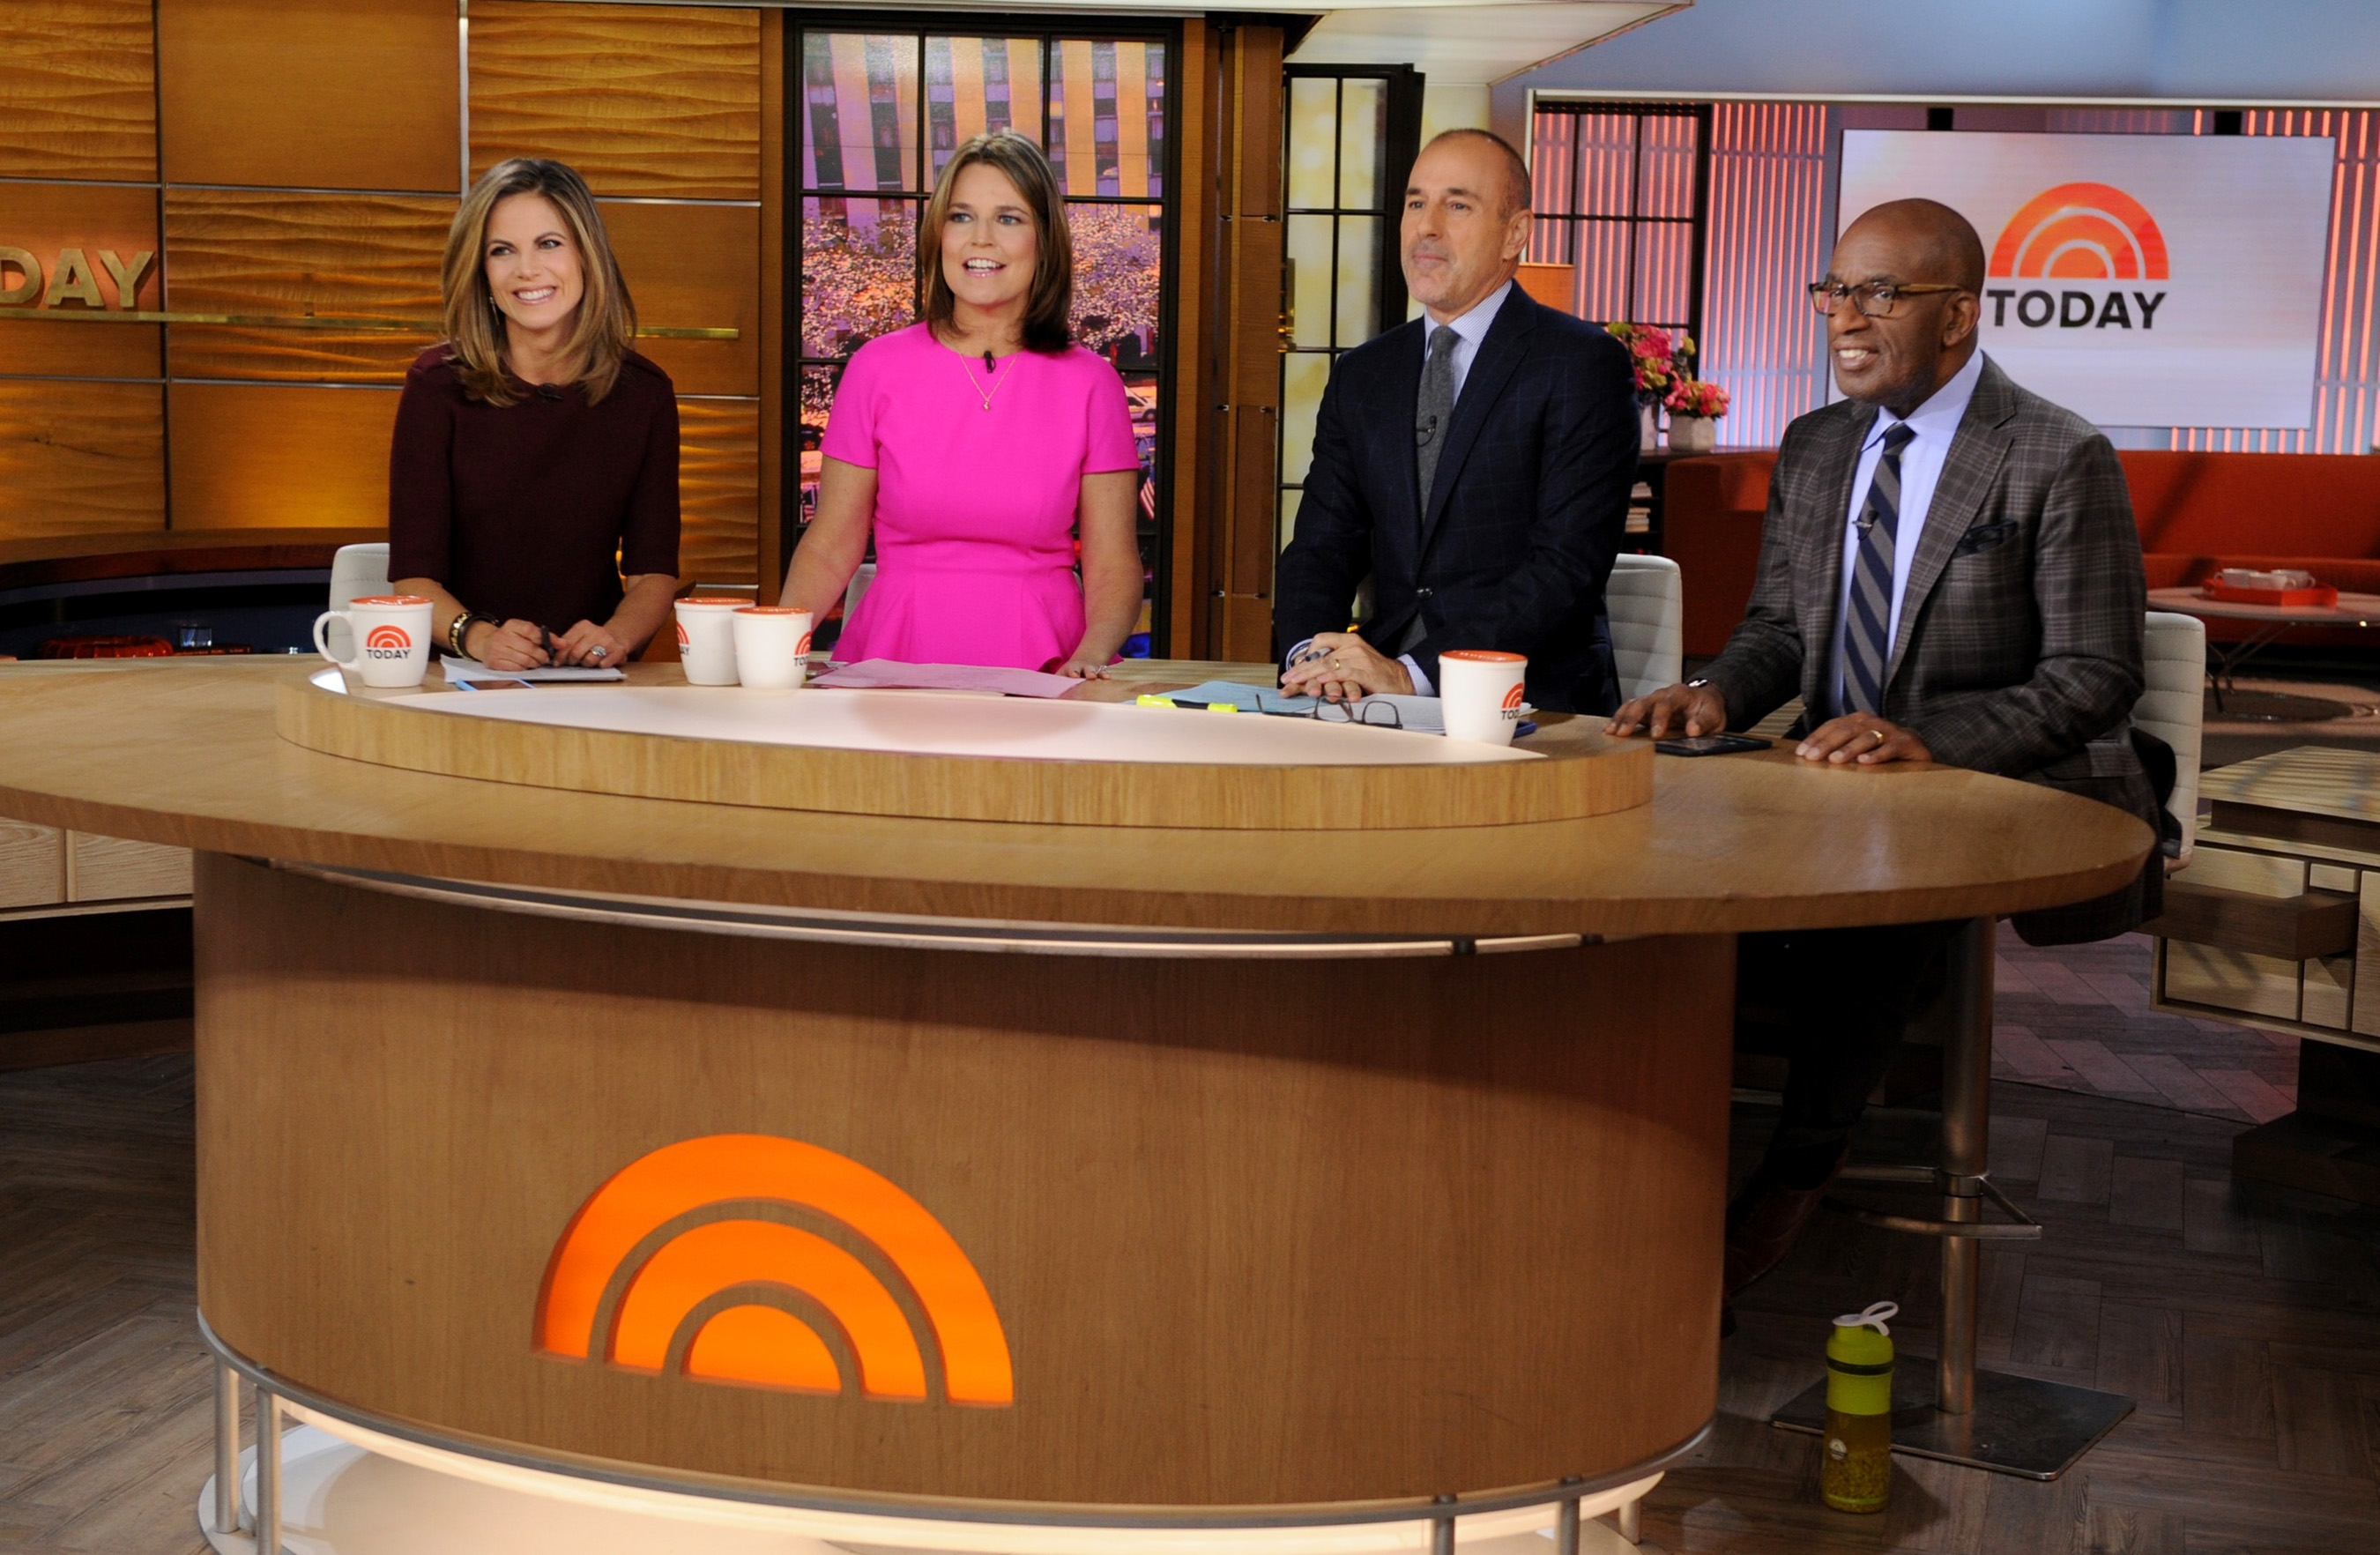 NBC's Today Show, with Natalie Morales, Savannah Guthrie, Matt Lauer and Al Roker, is very popular in Western New York.